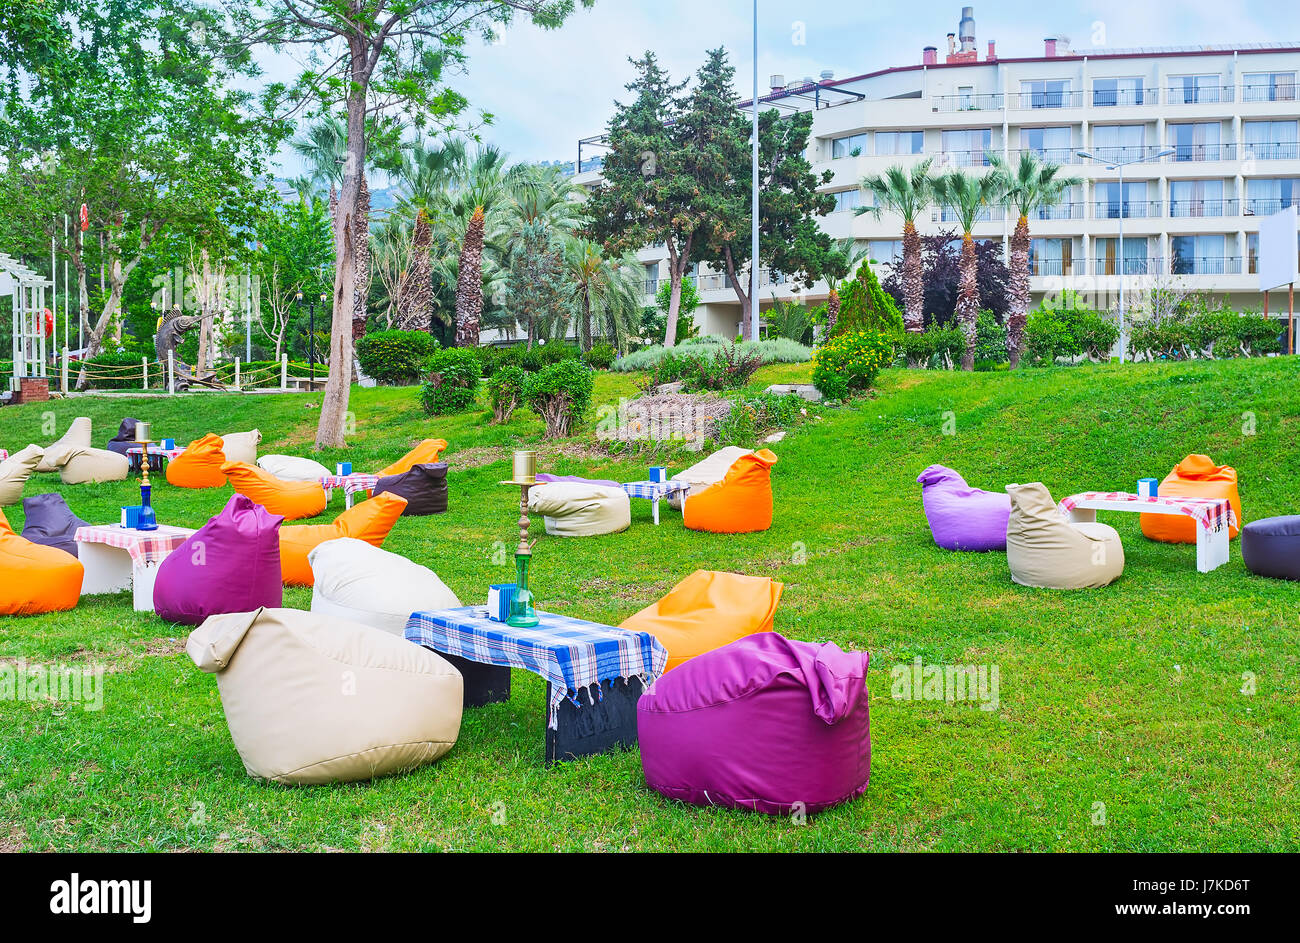 The lovely outdoor lounge cafe with colorful bean bag chairs and shishas on tables, Kemer, Turkey. - Stock Image